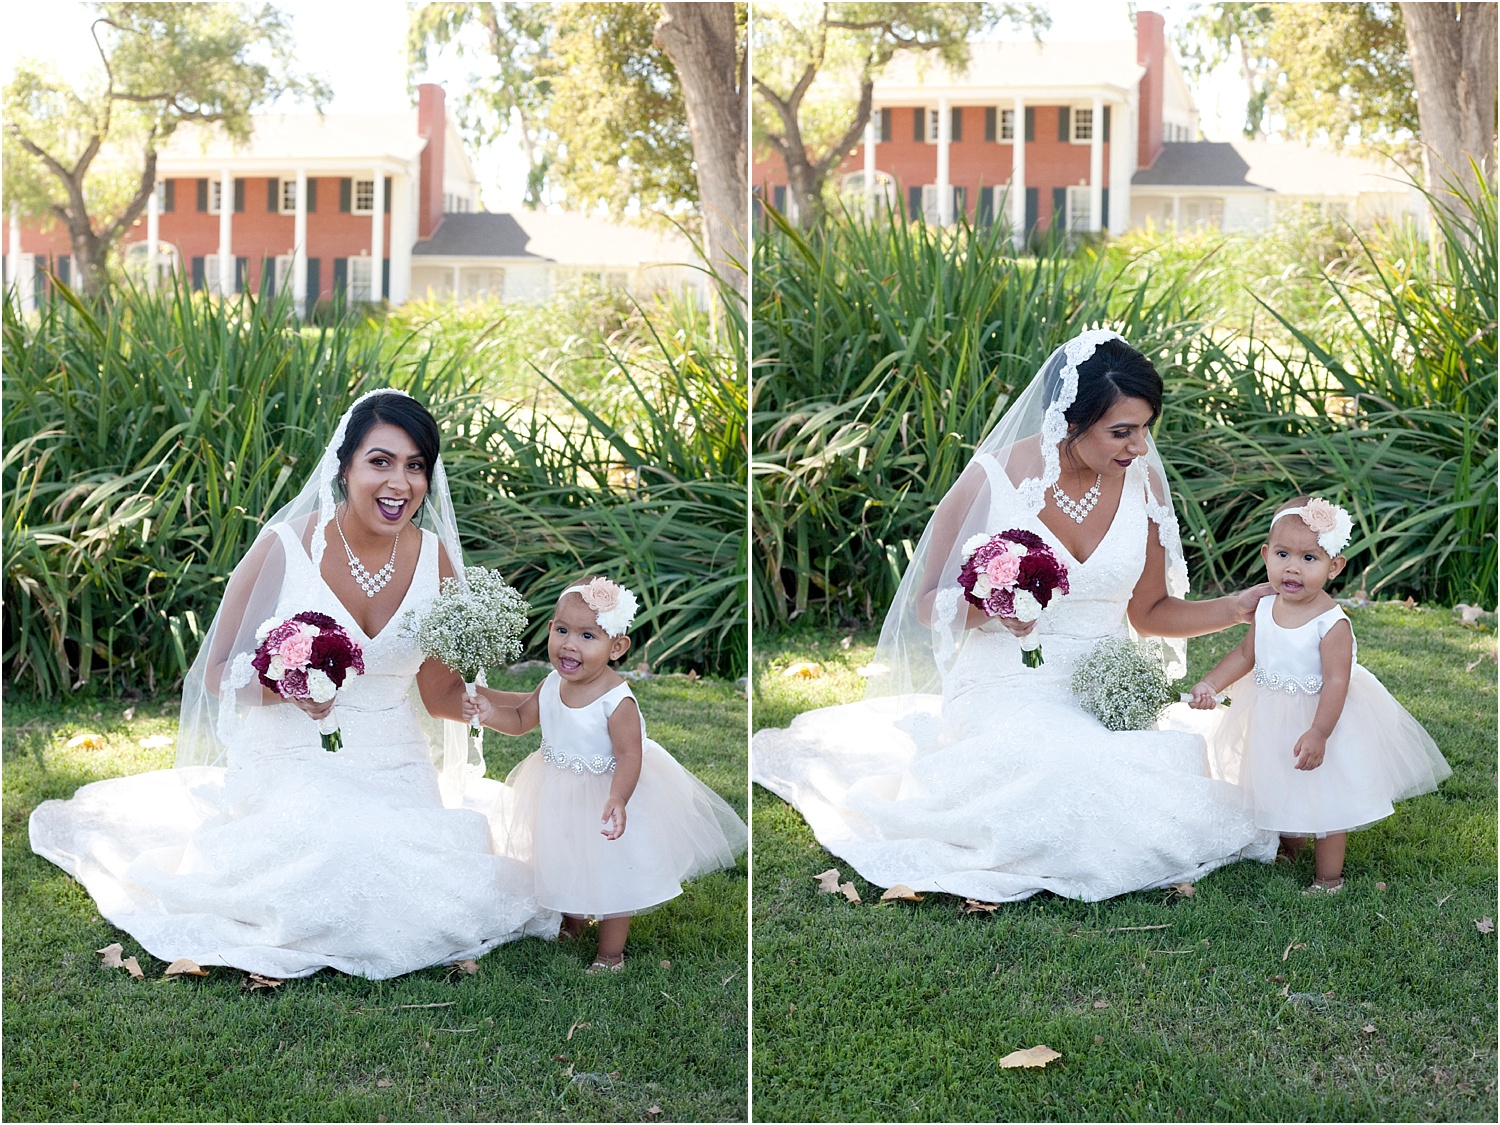 How to photograph family and bridal party portraits quickly at weddings 27